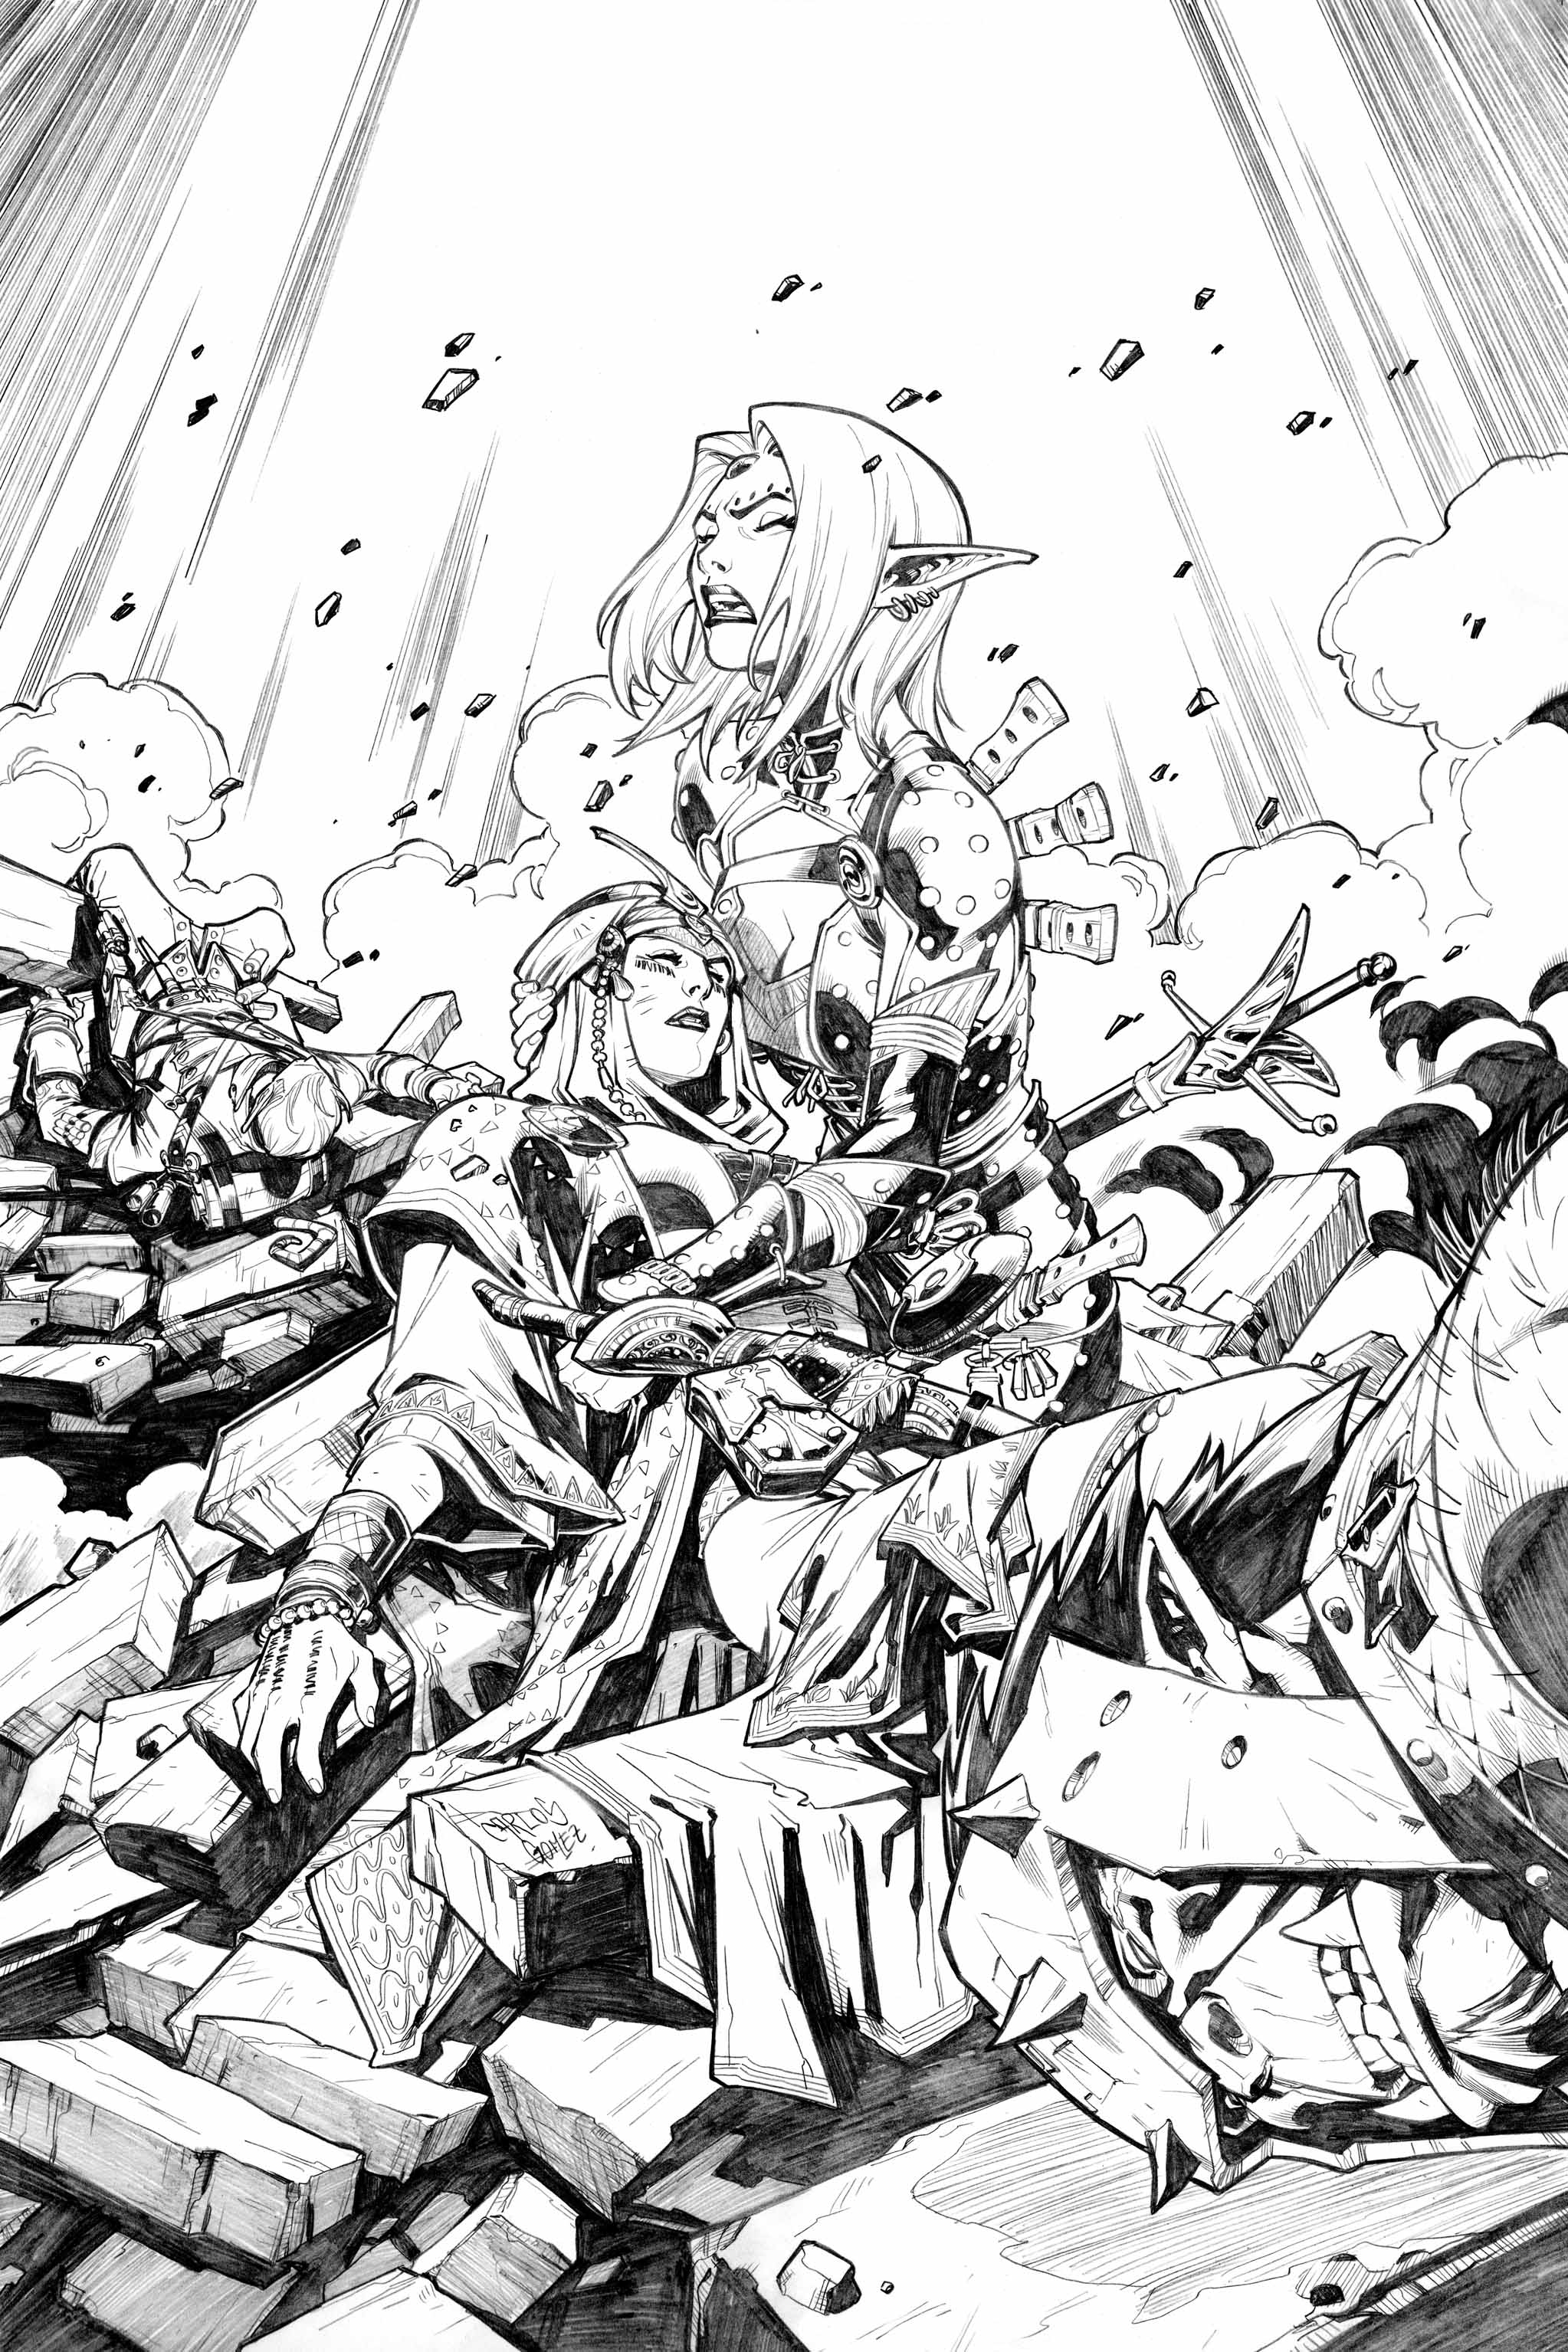 PATHFINDER: HOLLOW MOUNTAIN #3 COVER by CarlosGomezArtist